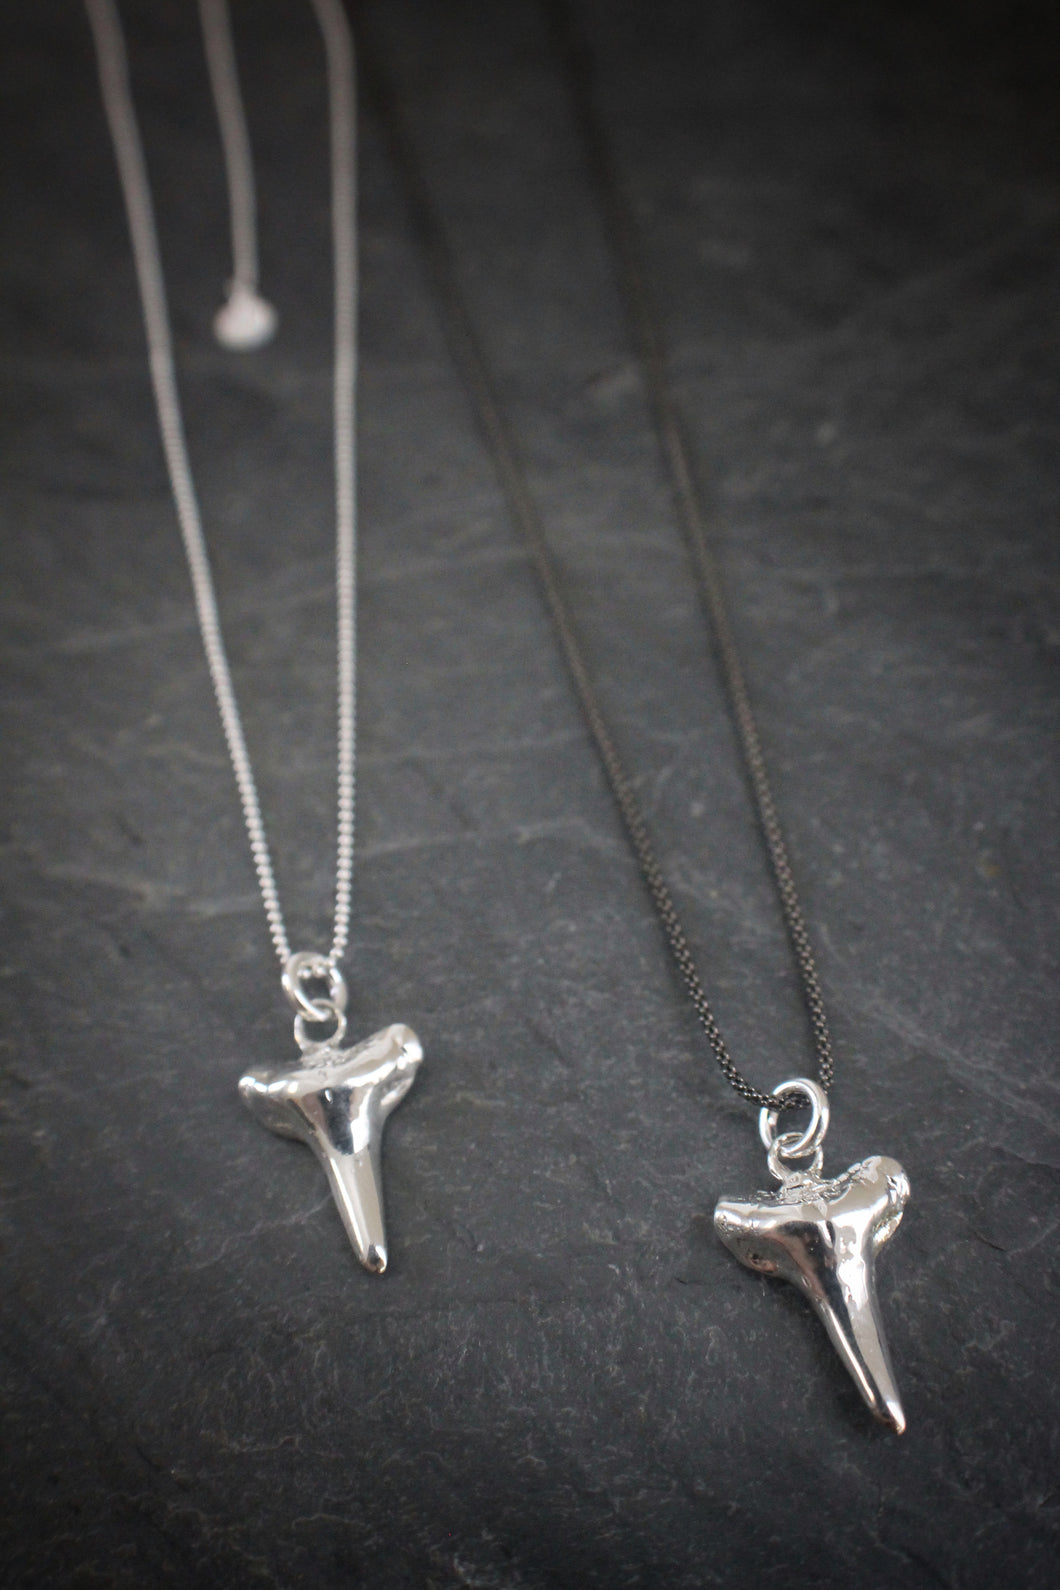 Sea and Stone Jewelry - Sterling silver petite cast sharks teeth on blackened or shiny silver chain